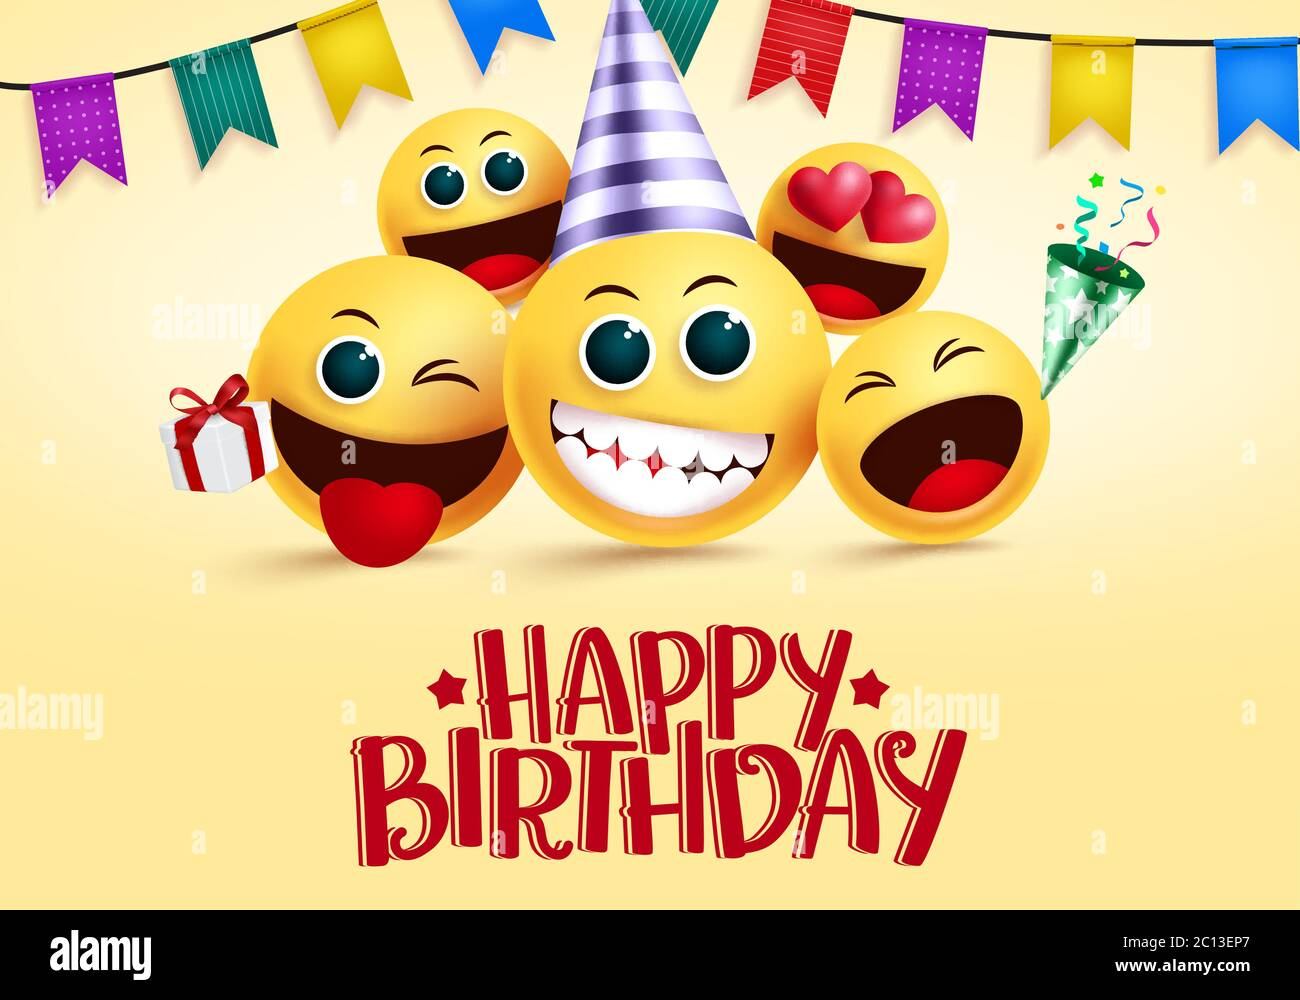 Birthday Smiley Emojis Vector Greeting Happy Birthday Greeting Text In Empty Space For Messages With Yellow Smileys Emoji And Party Elements Stock Vector Image Art Alamy